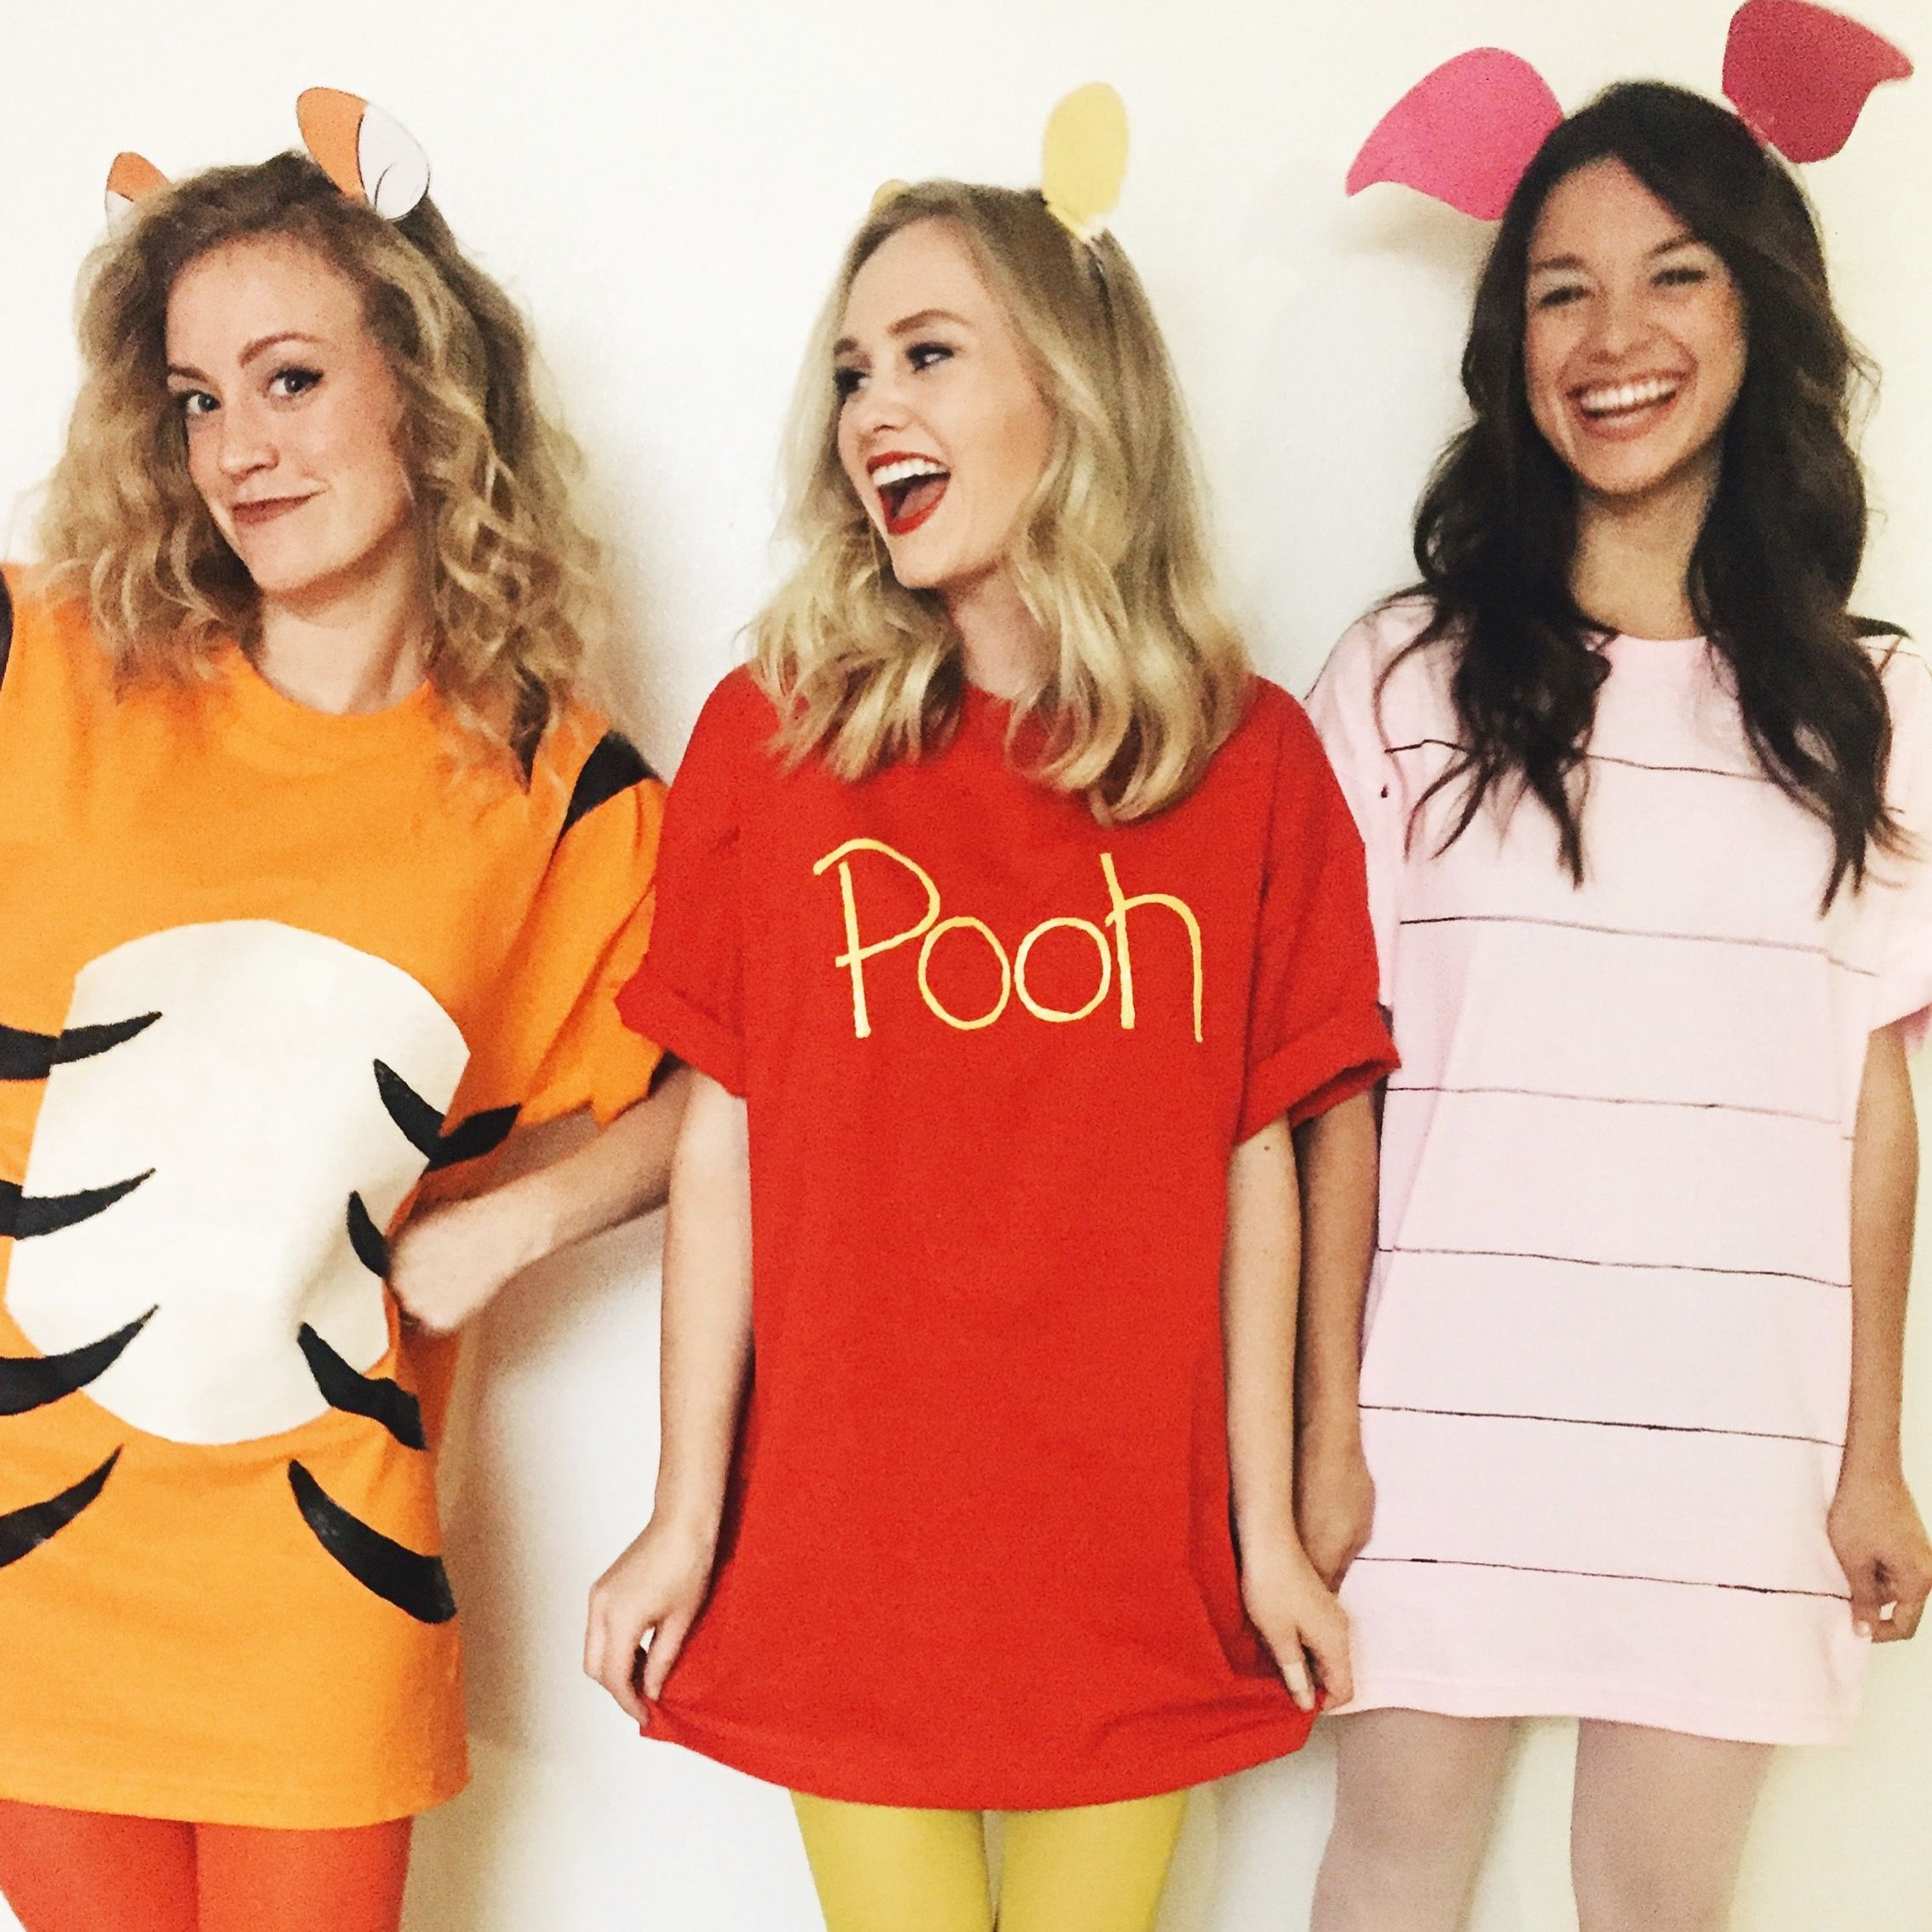 Halloween DIY Costumes Pooh Bear, Piglet \u0026 Tigger pinterest  @charlottetweed